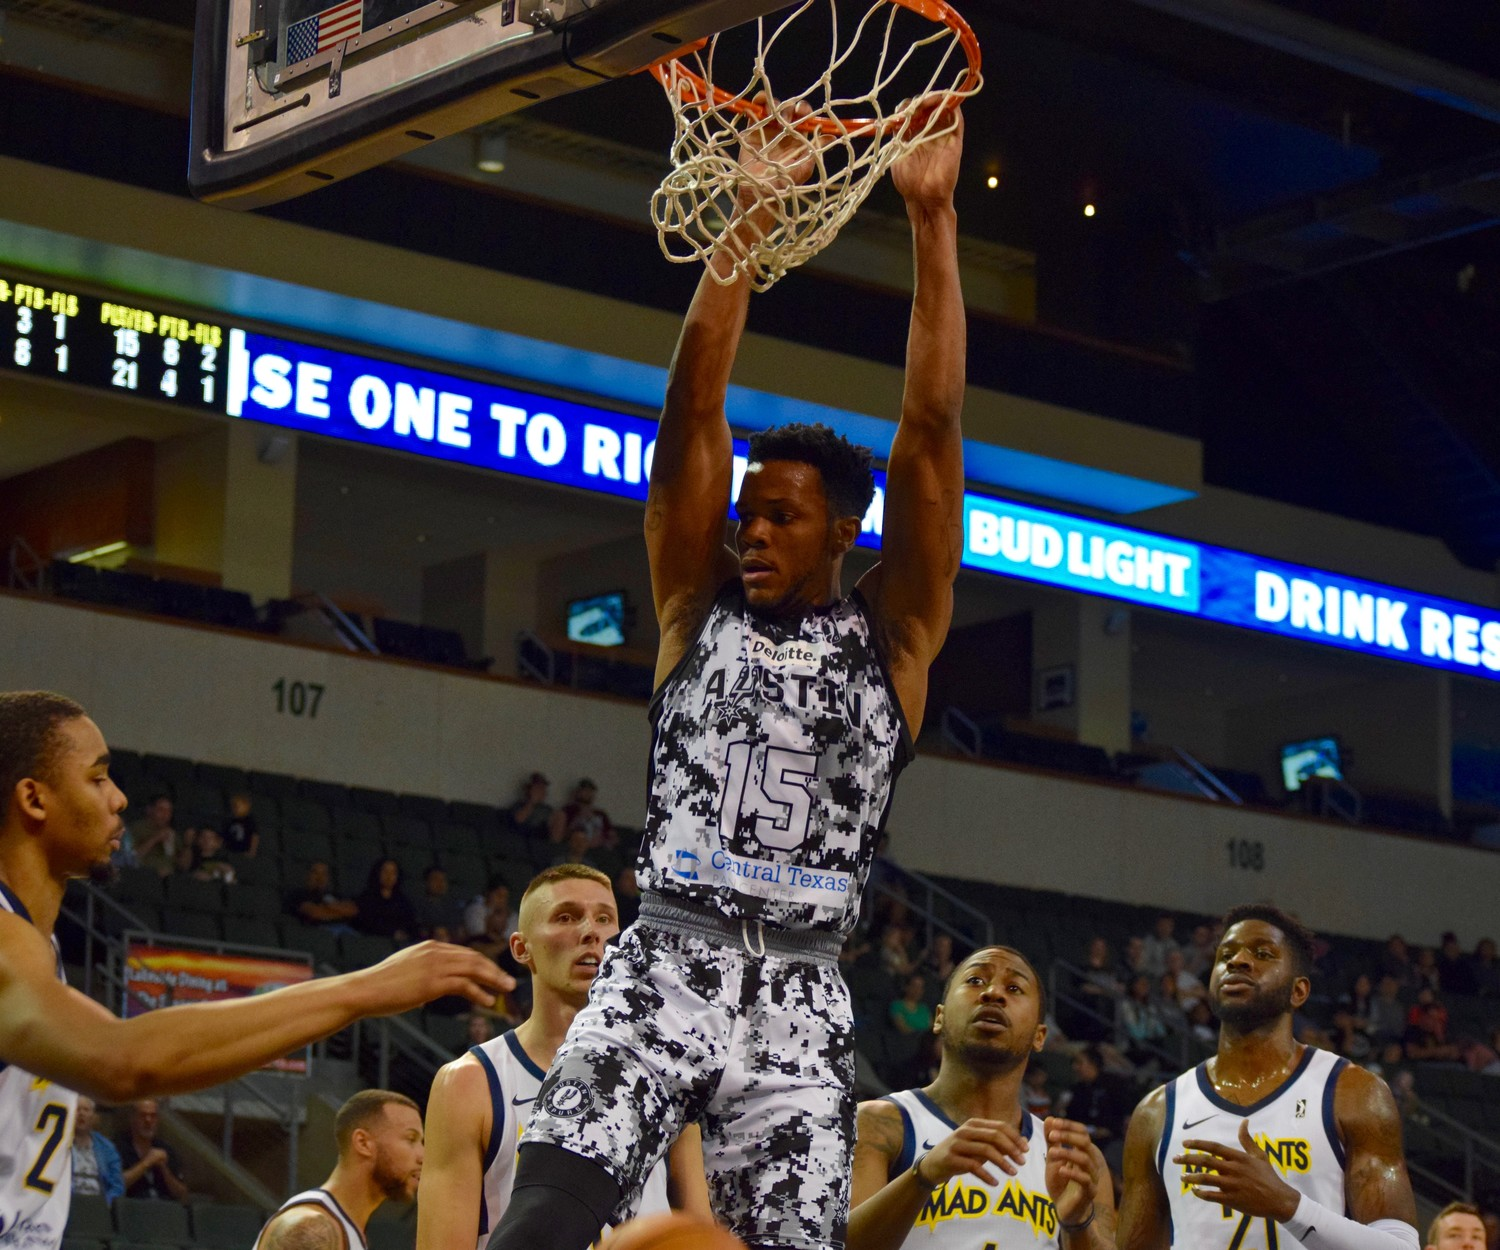 Jaron Blossomgame and the Austin Spurs qualified for the playoffs with a pair of wins this weekend. Austin has made the postseason in three of the last four years.